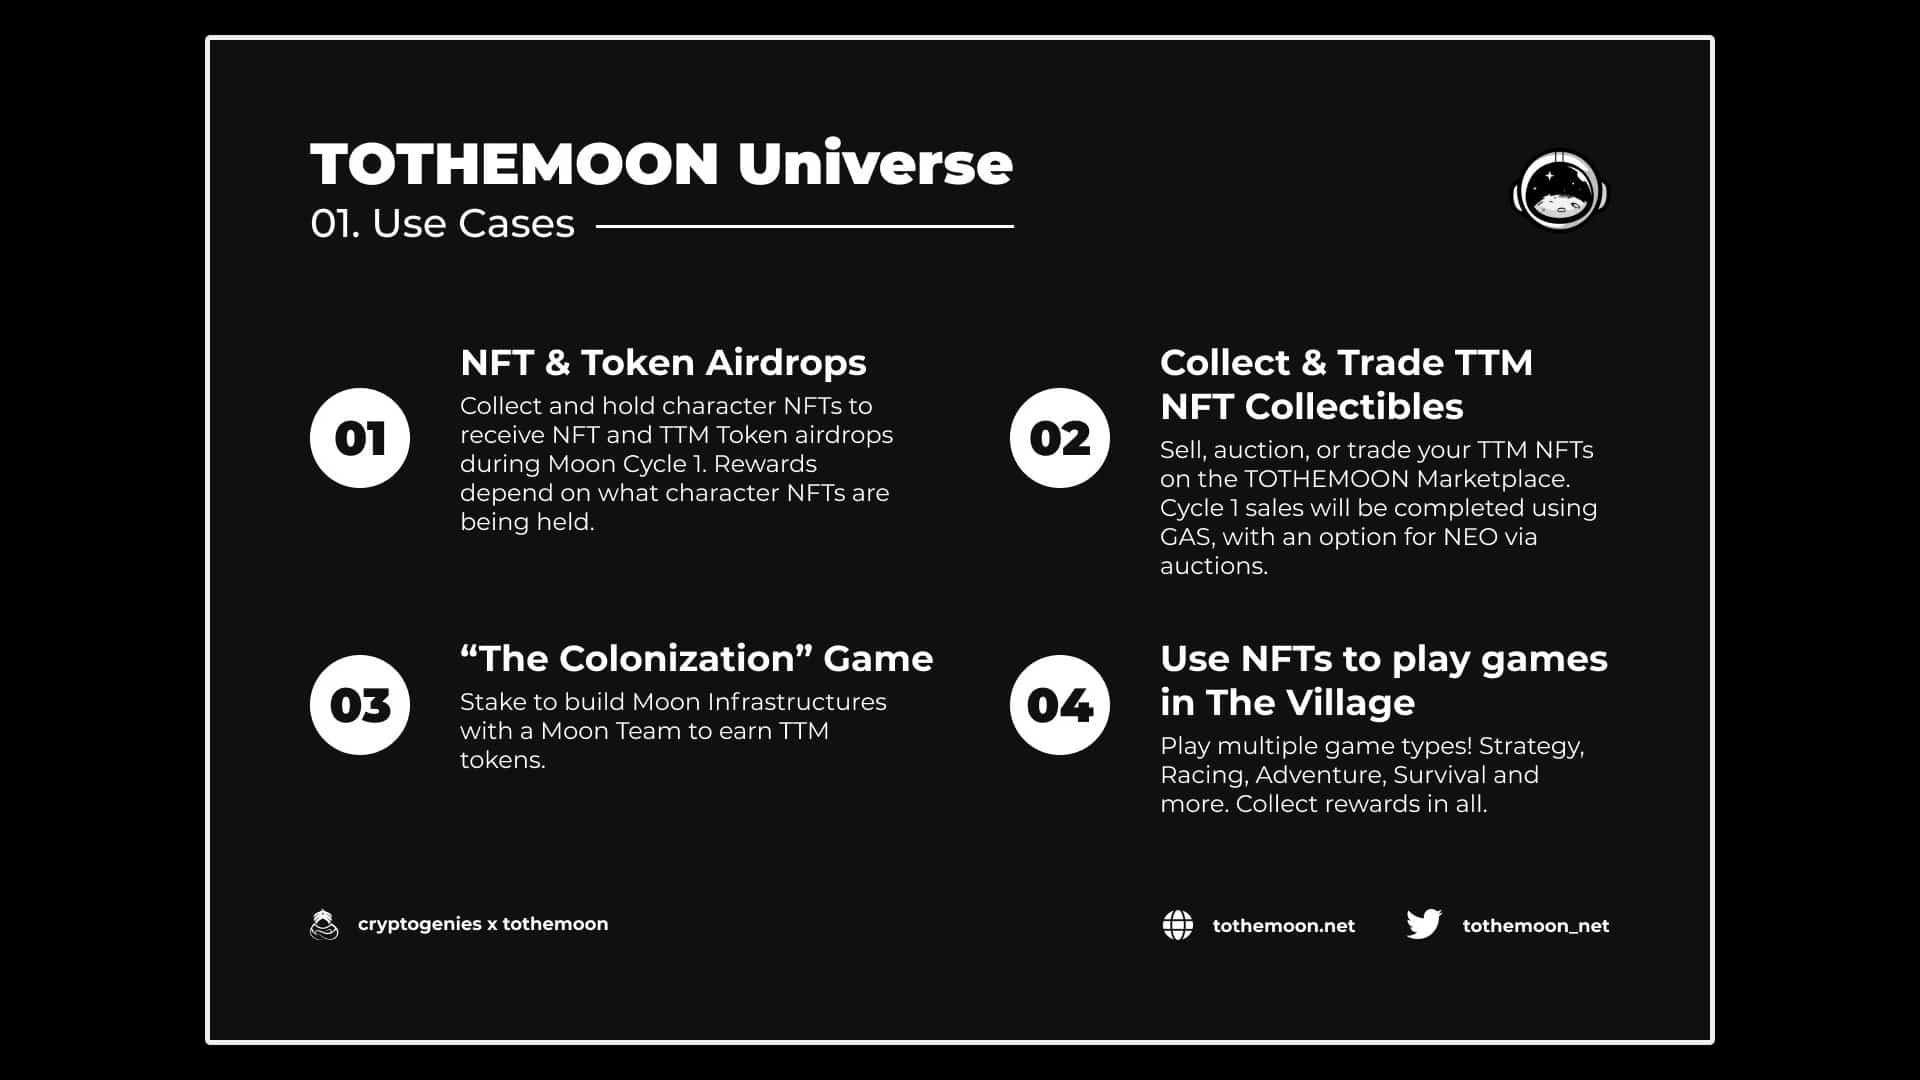 TOTHEMOON UNIVERSE Explained in Infographics